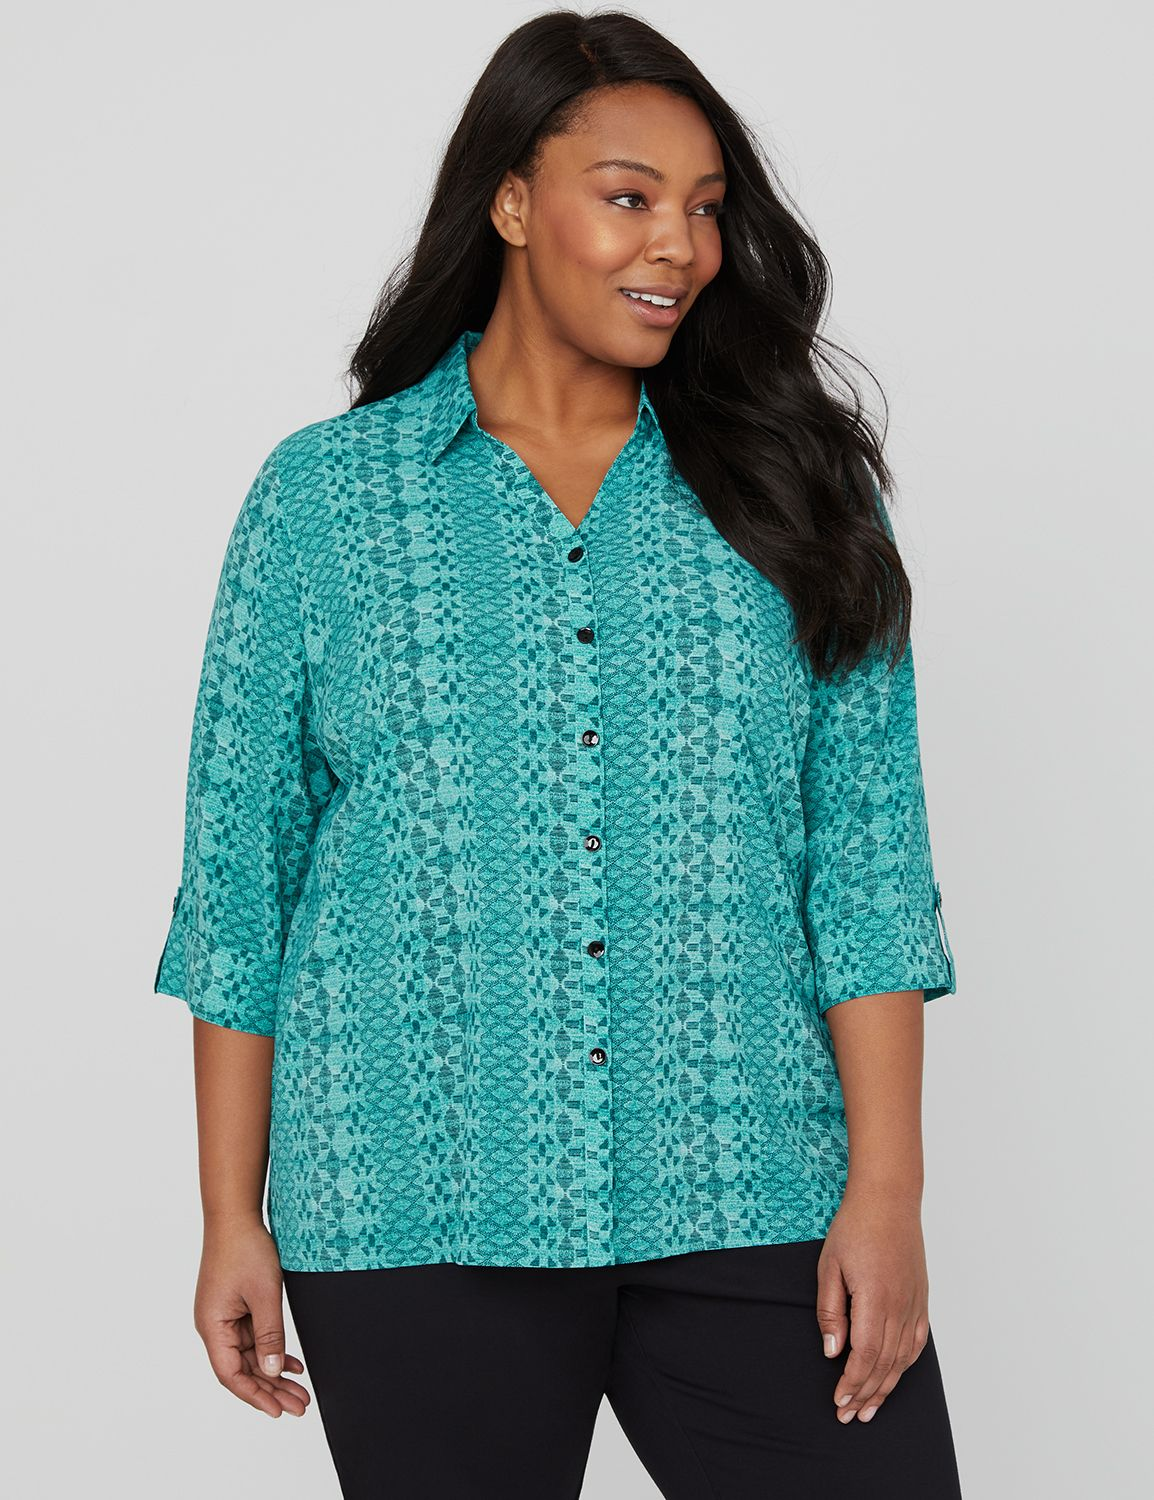 Maldives Buttonfront Shirt 3/4 Slv Collared CDC Blouse MP-300104918